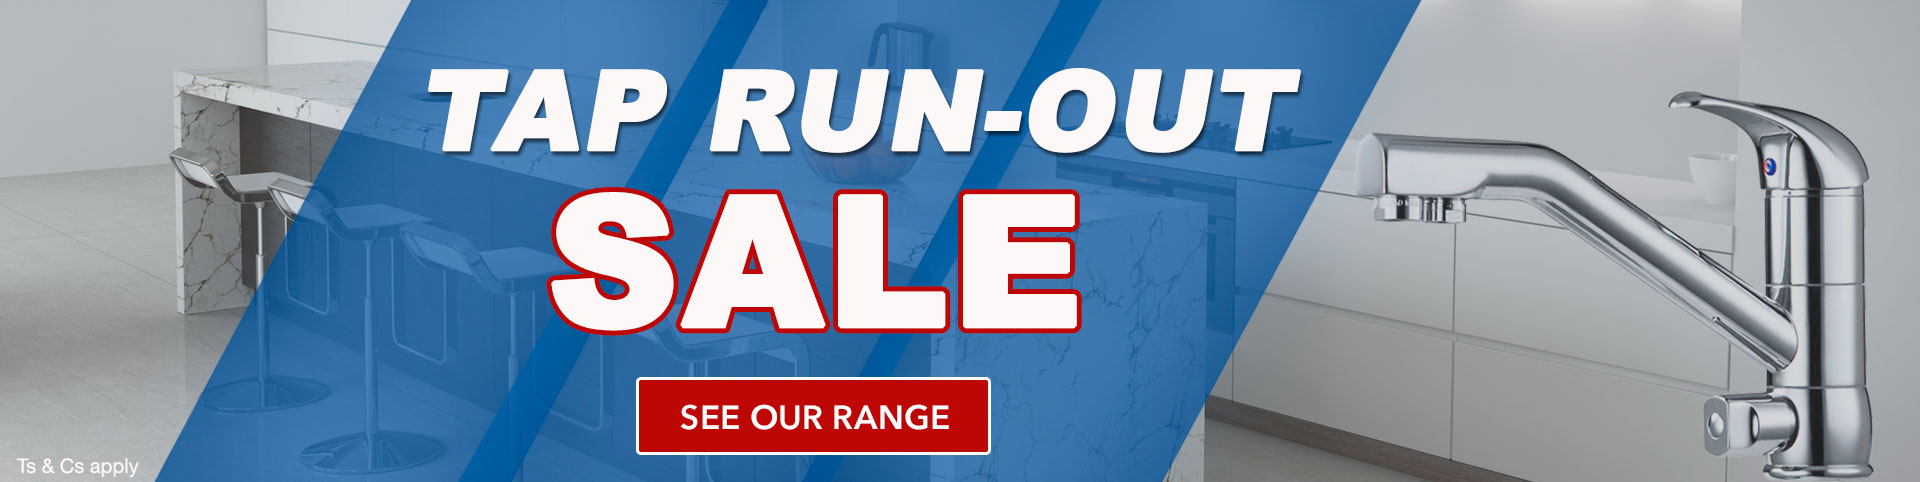 Tap Runout Sale    Puratap   Water Filters Specialist in Adelaide